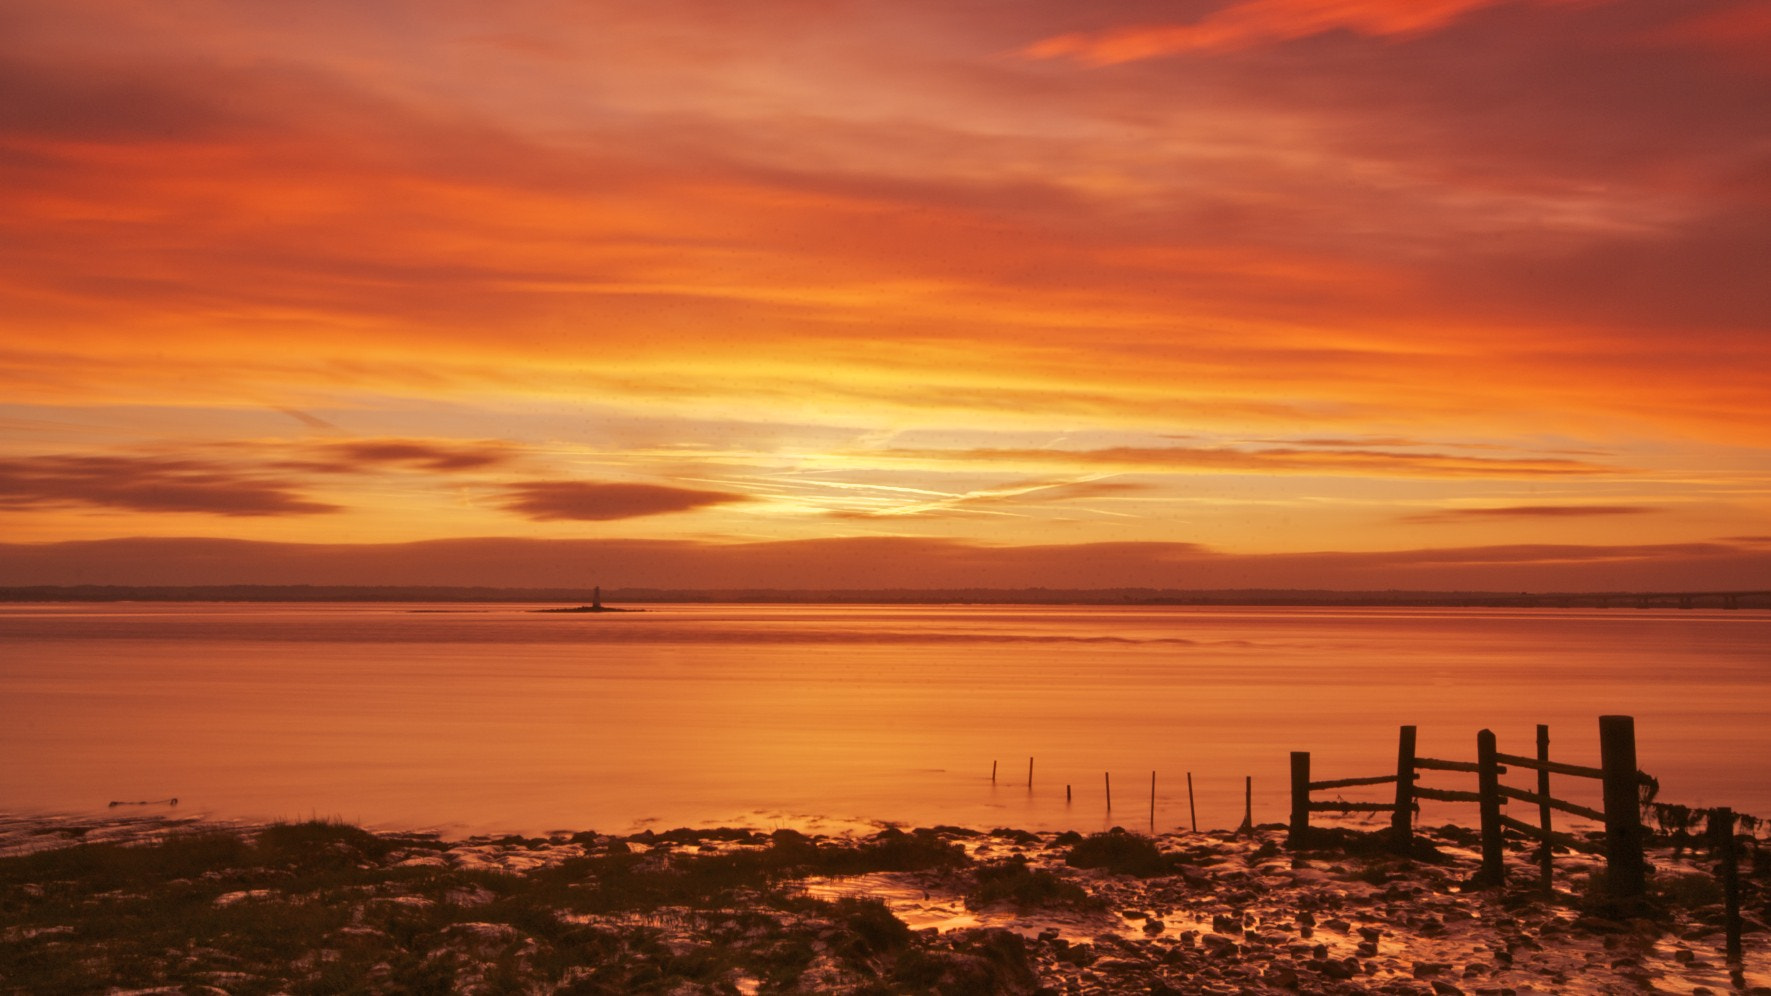 Photograph Sunrise over the Severn Estuary by Ben Houghton on 500px